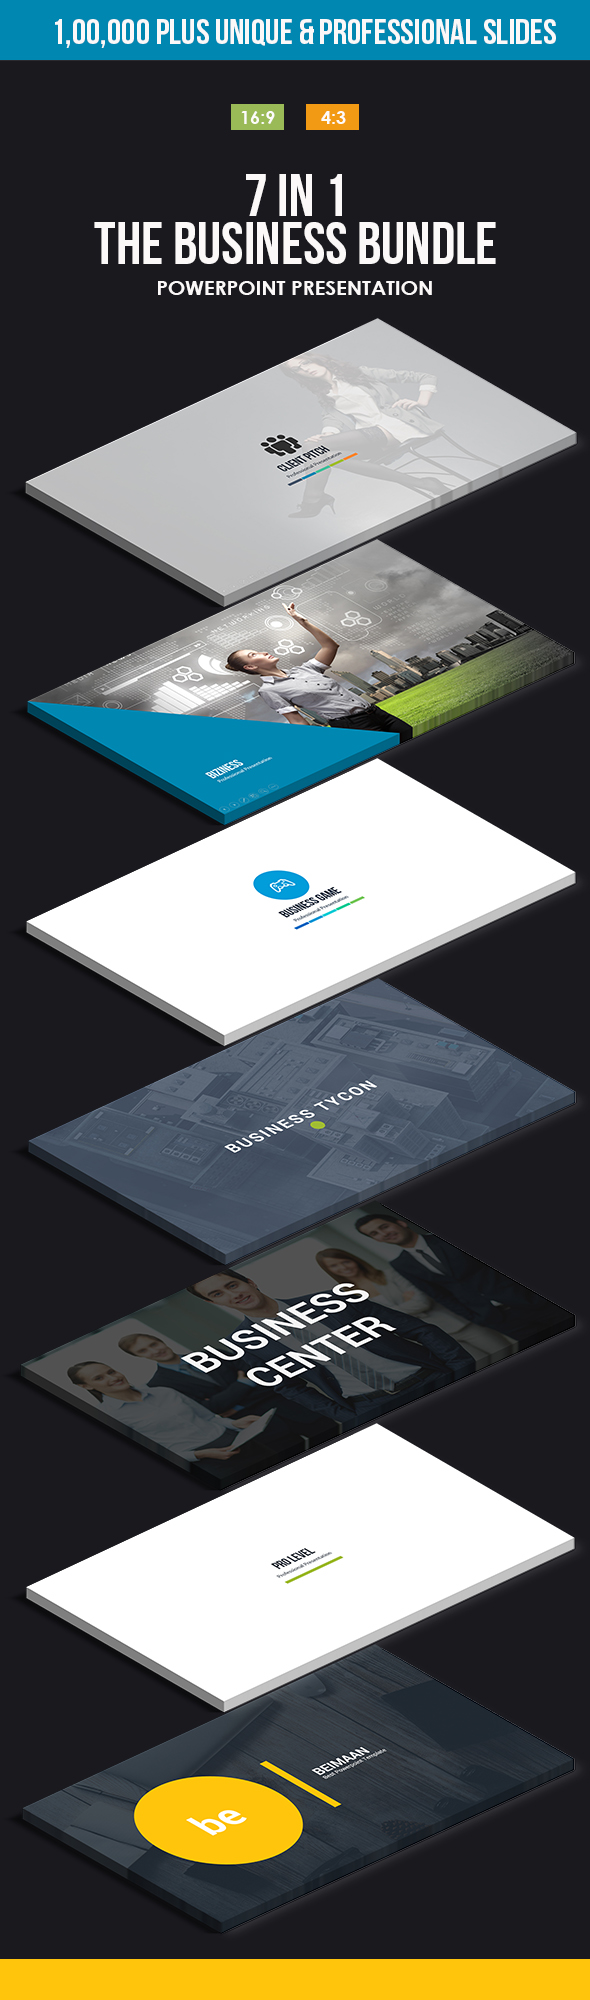 GraphicRiver 7 in 1 The Business Bundle 20298550